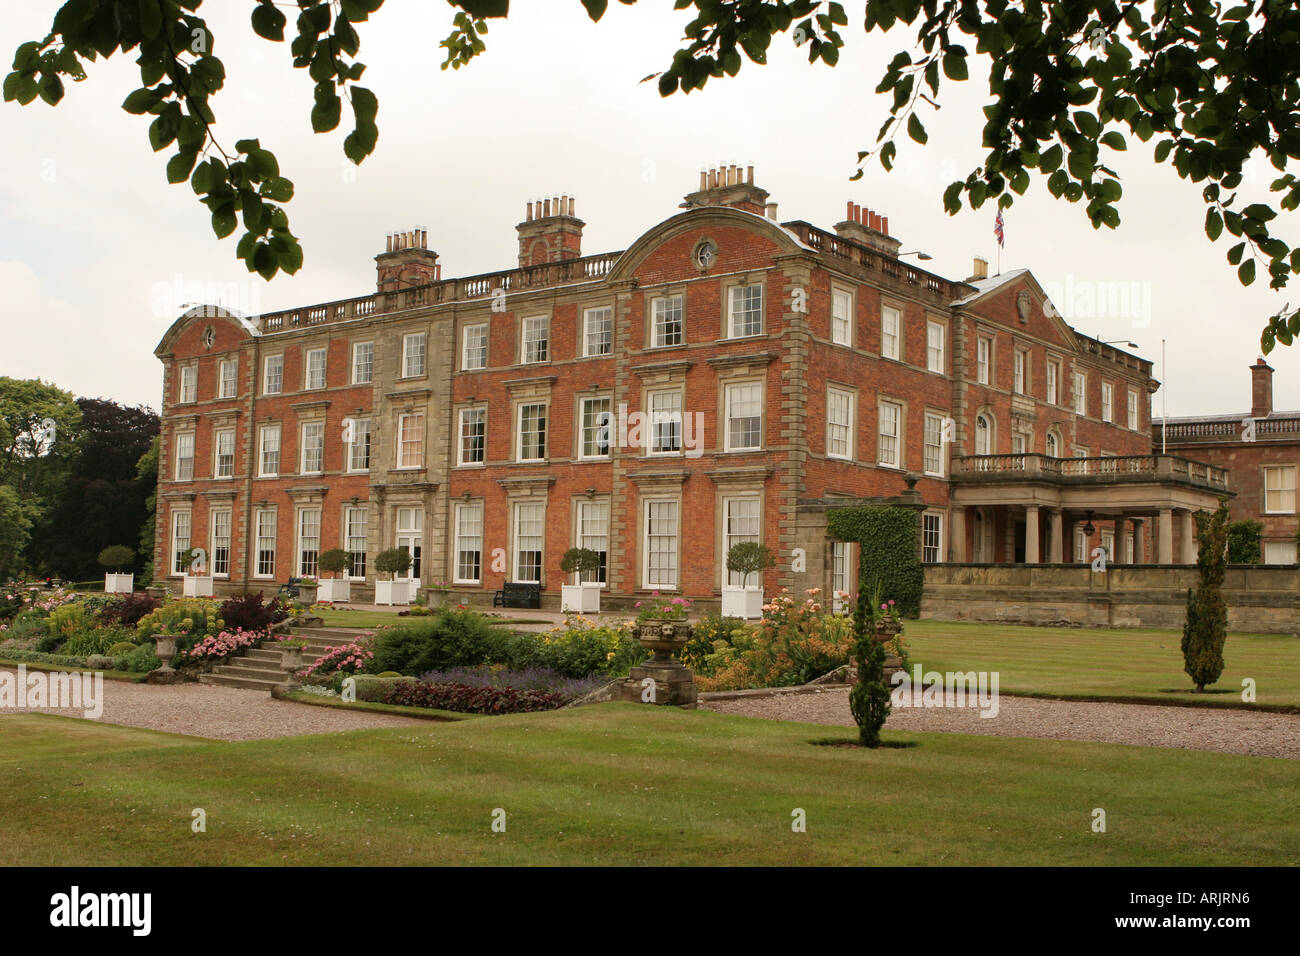 Weston Park Shropshire The 17th Century House And Gardens